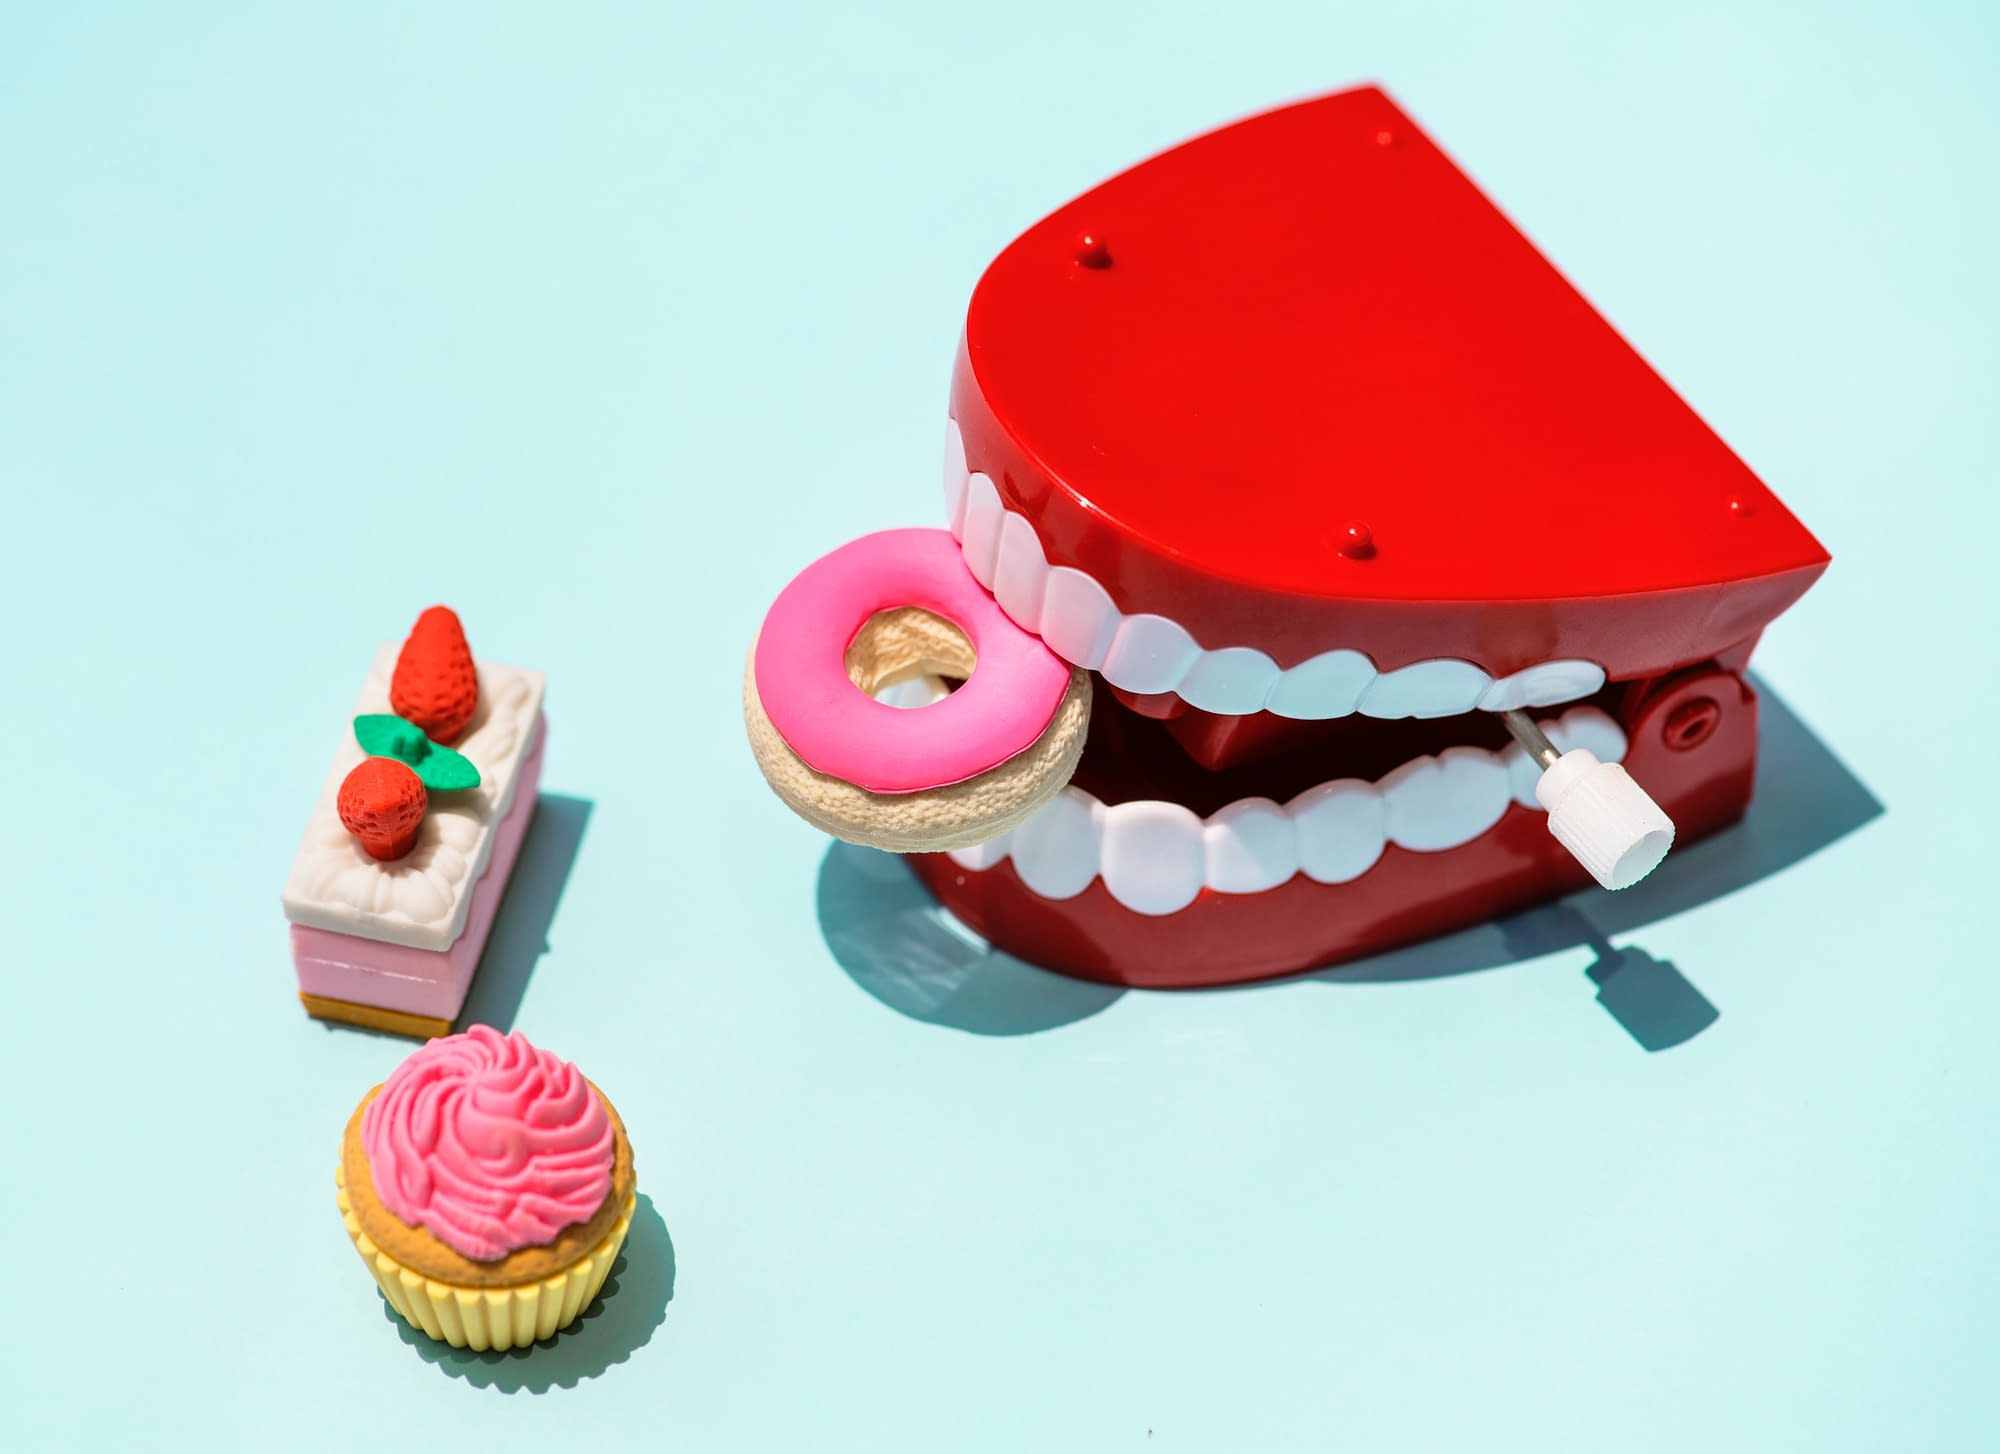 Dentures Candy Sugar sensitive teeth and toothache